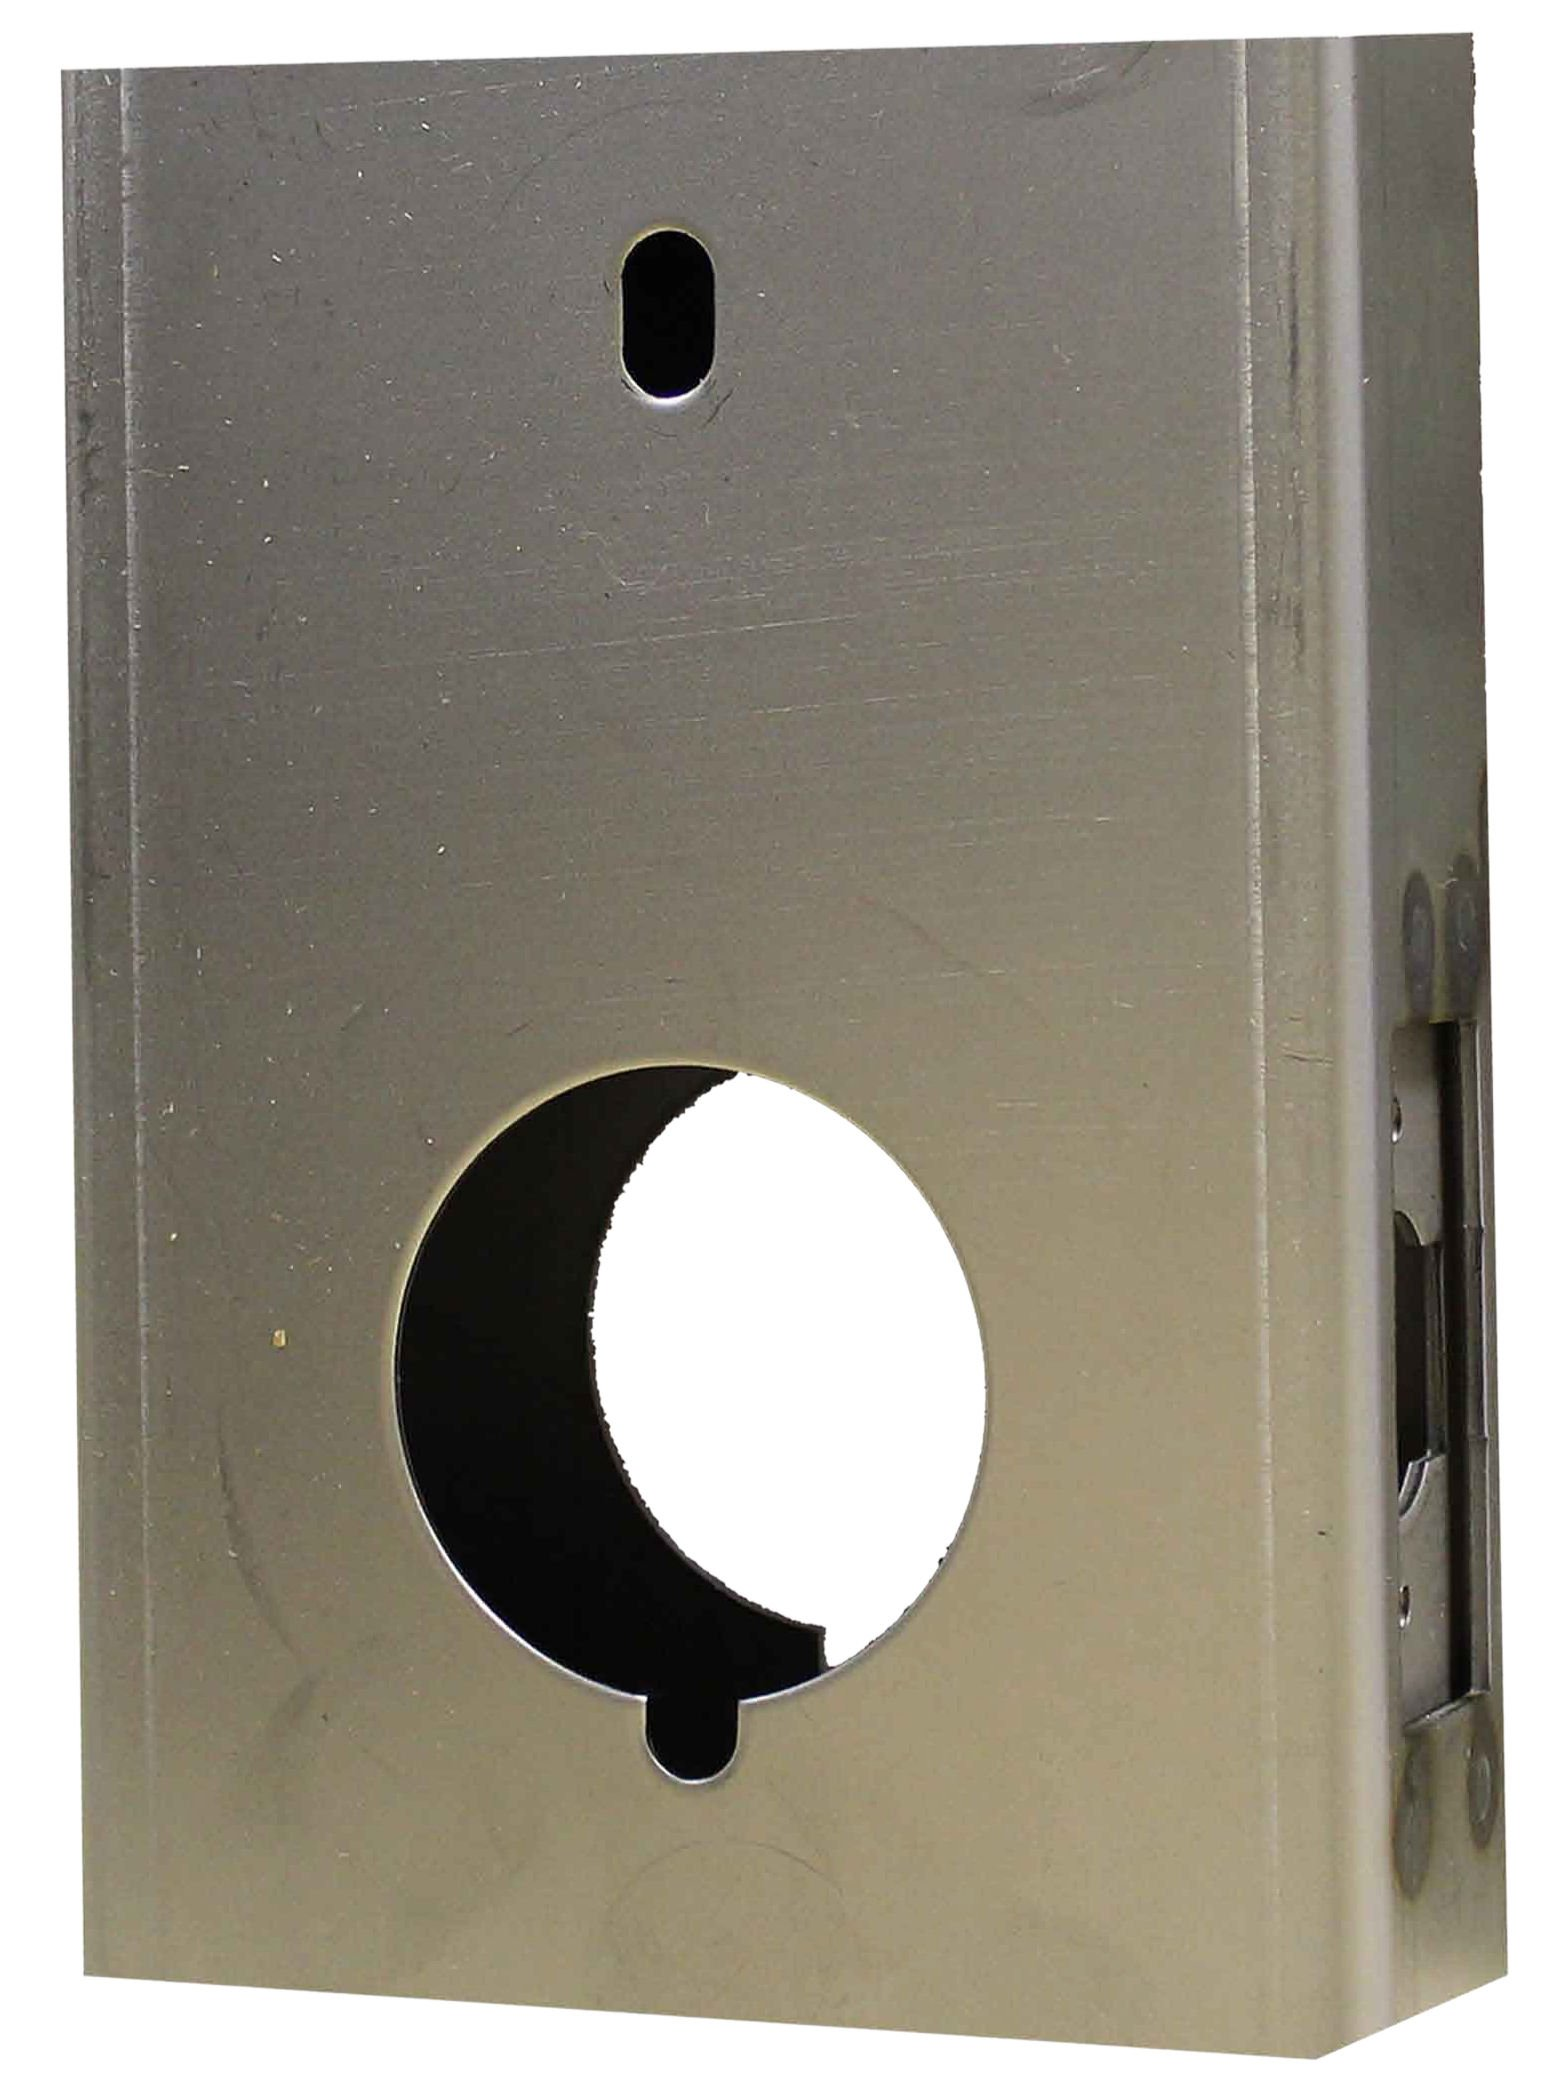 GB200M Gate Box by Lockey USA